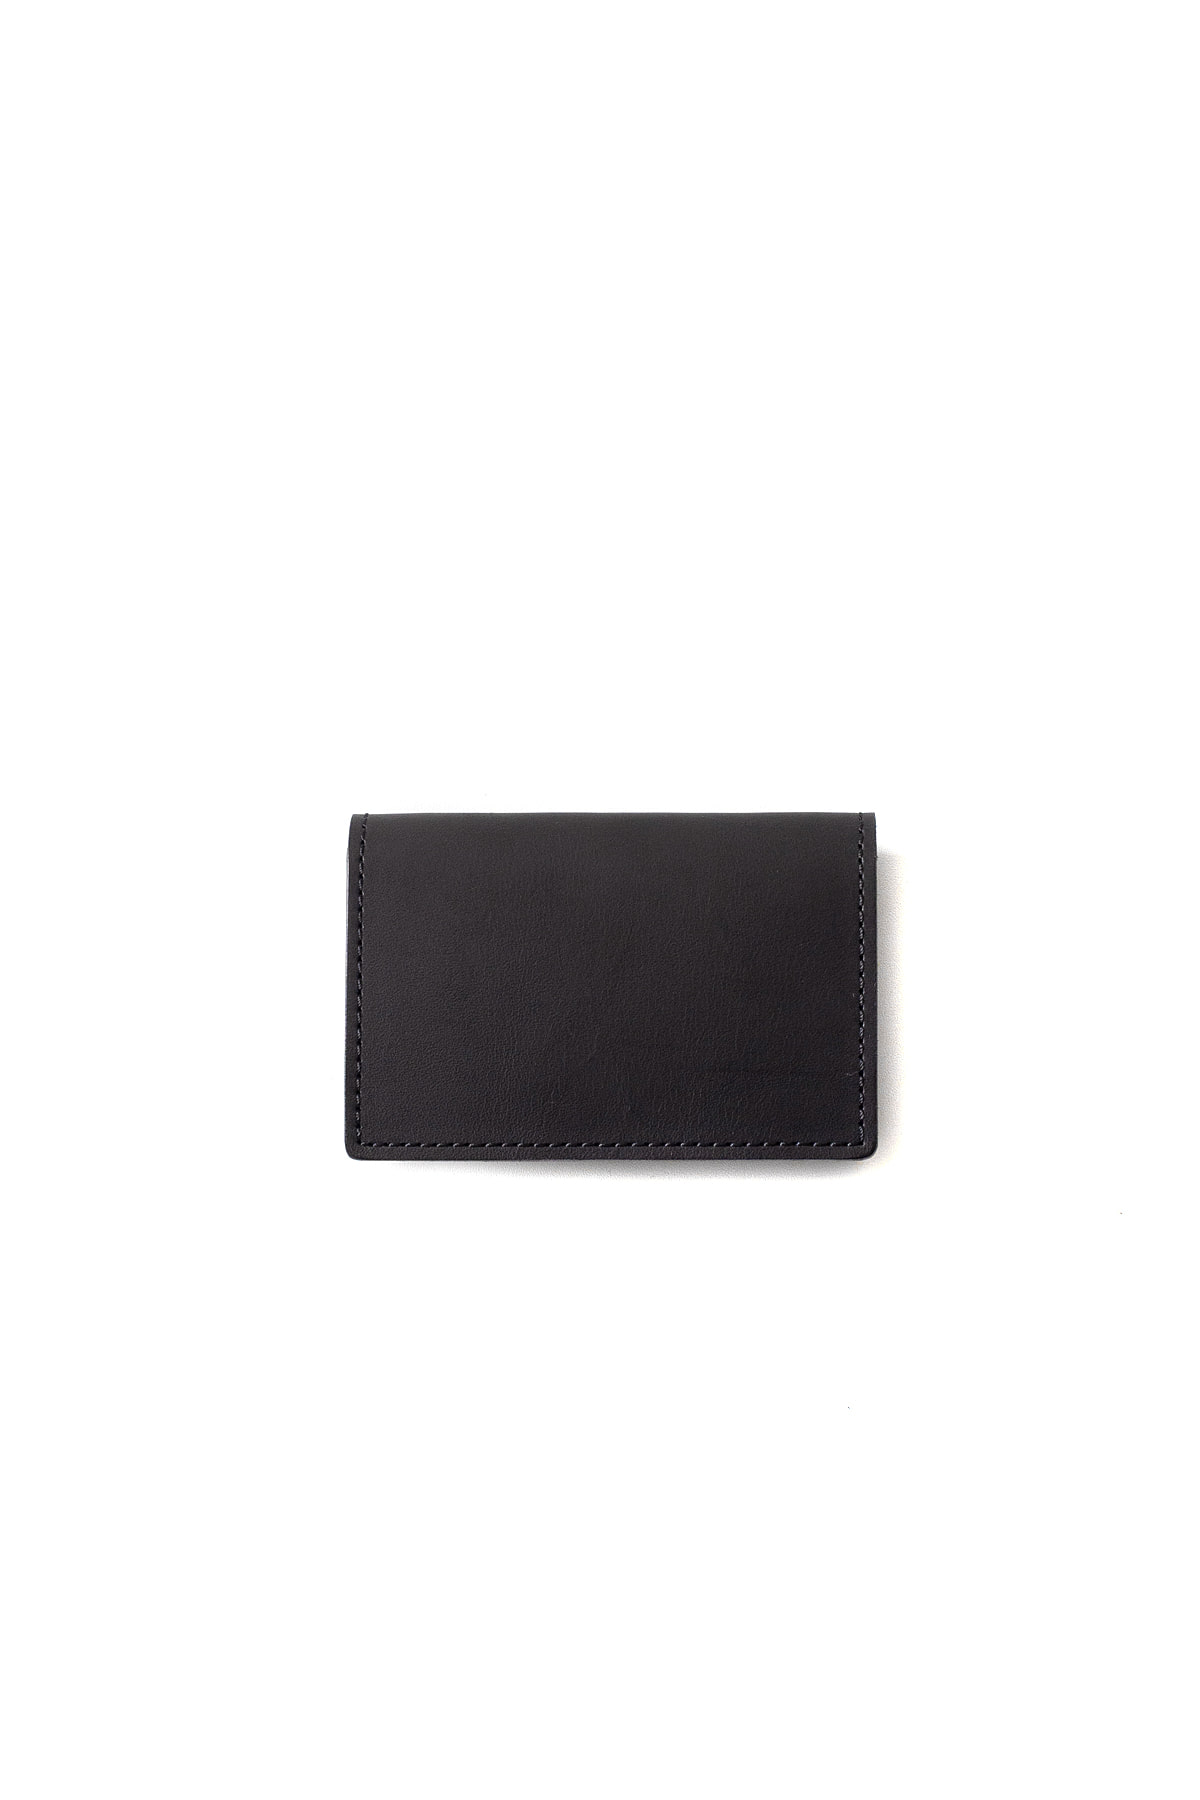 Hender Scheme : Folded Card Case (Black)